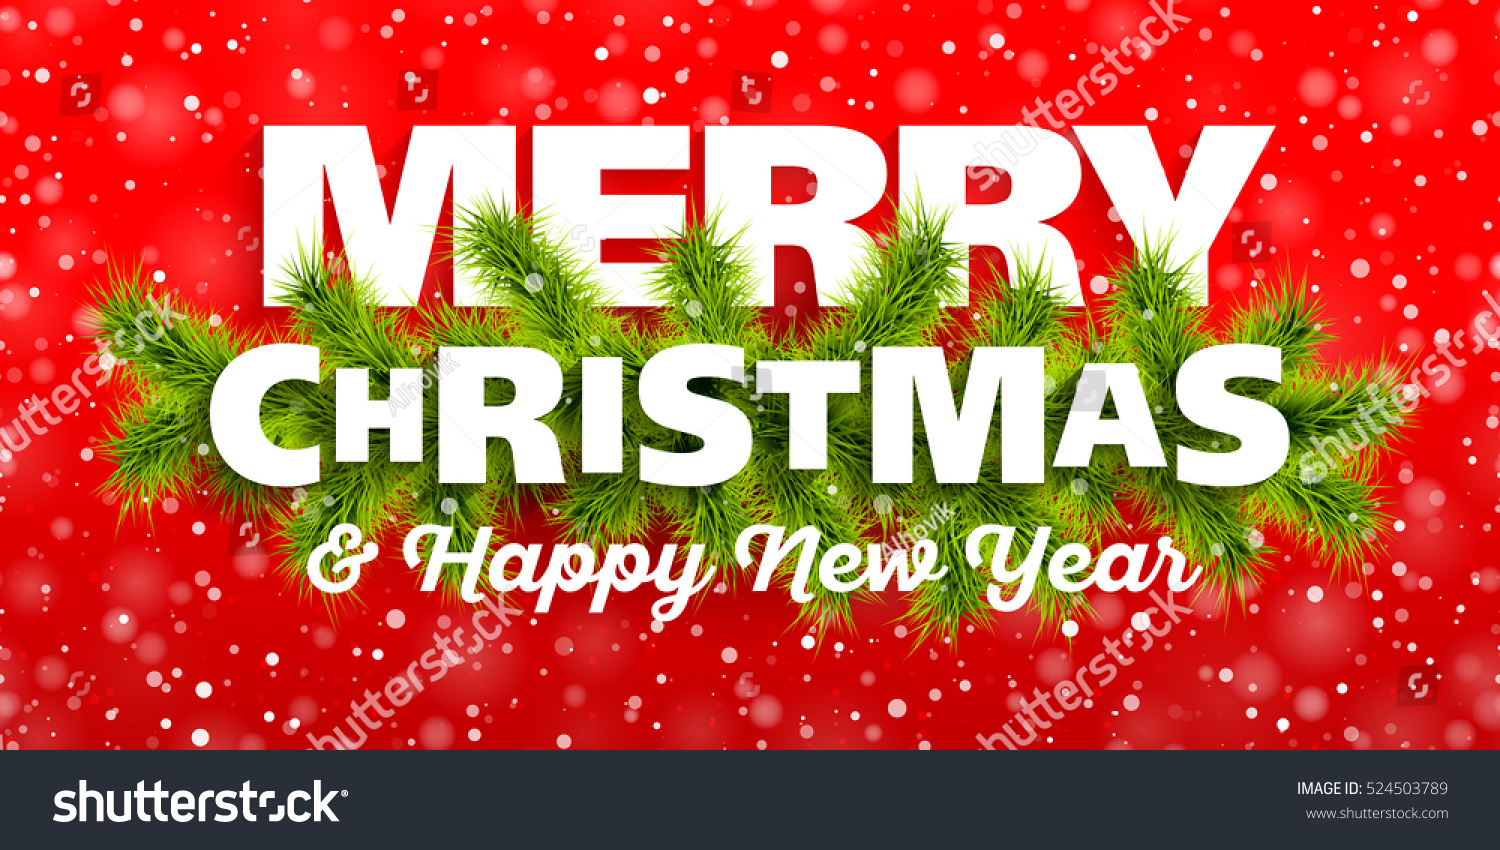 Merry christmas happy new year greeting stock vector 524503789 merry christmas and happy new year greeting card m4hsunfo Image collections